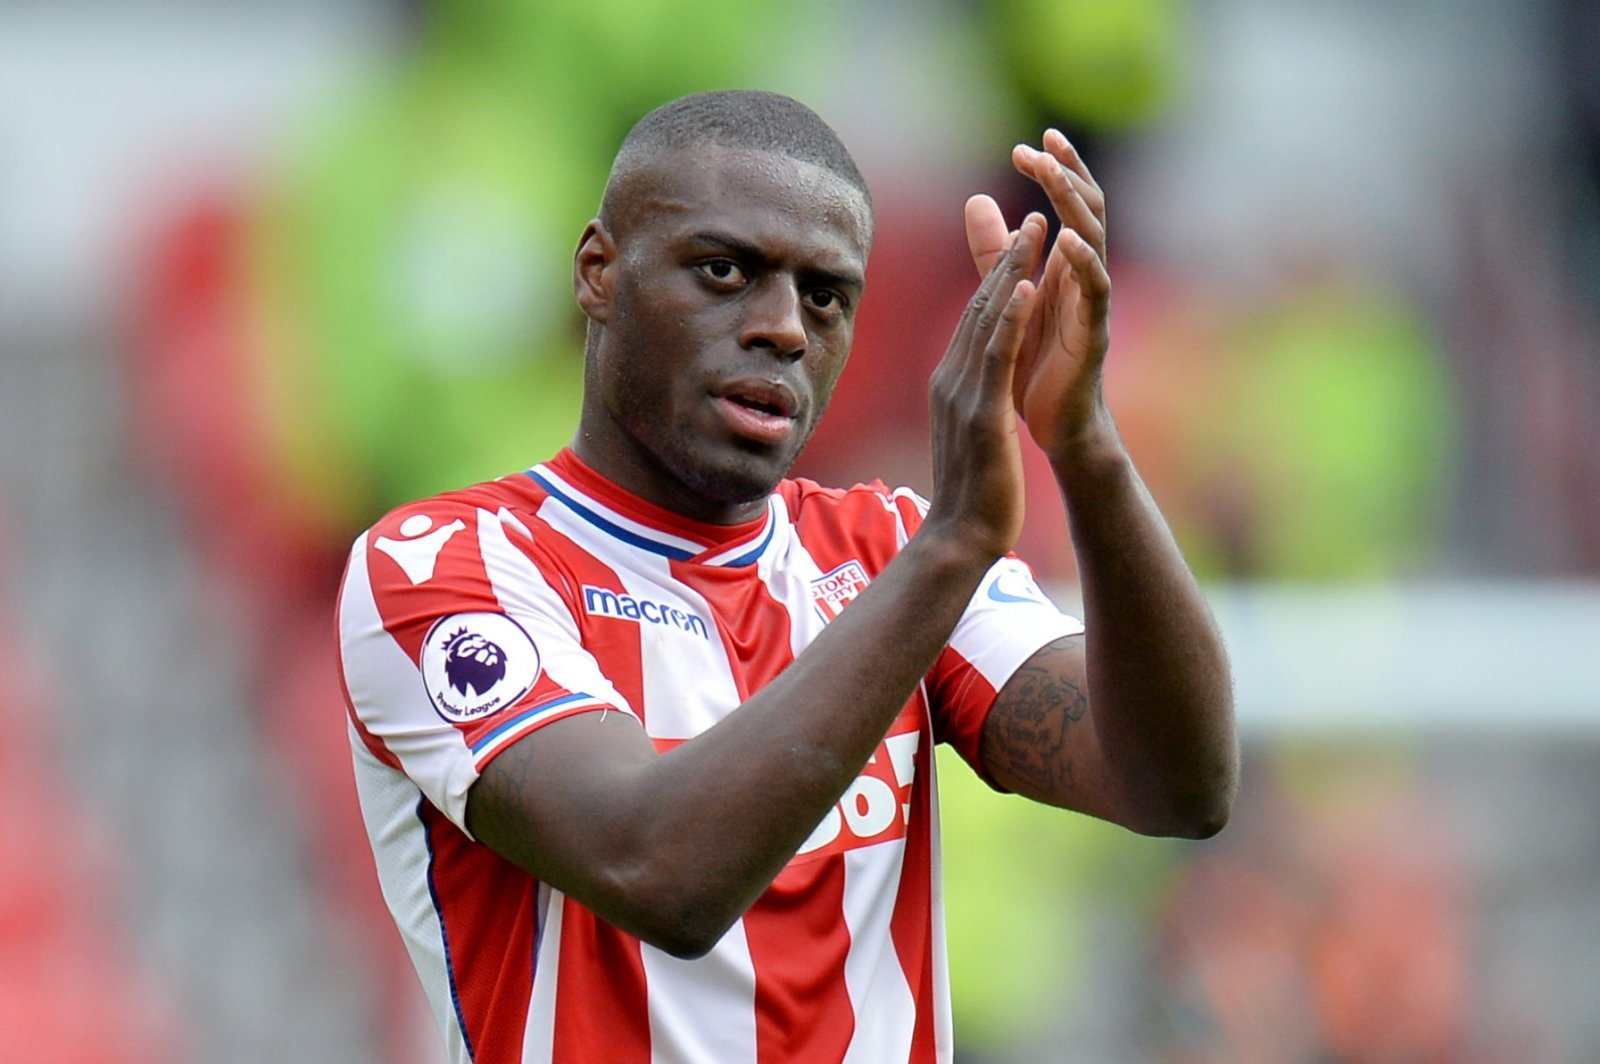 Domino effect: Williams to Stoke should inspire Wolves to swoop for Martins Indi